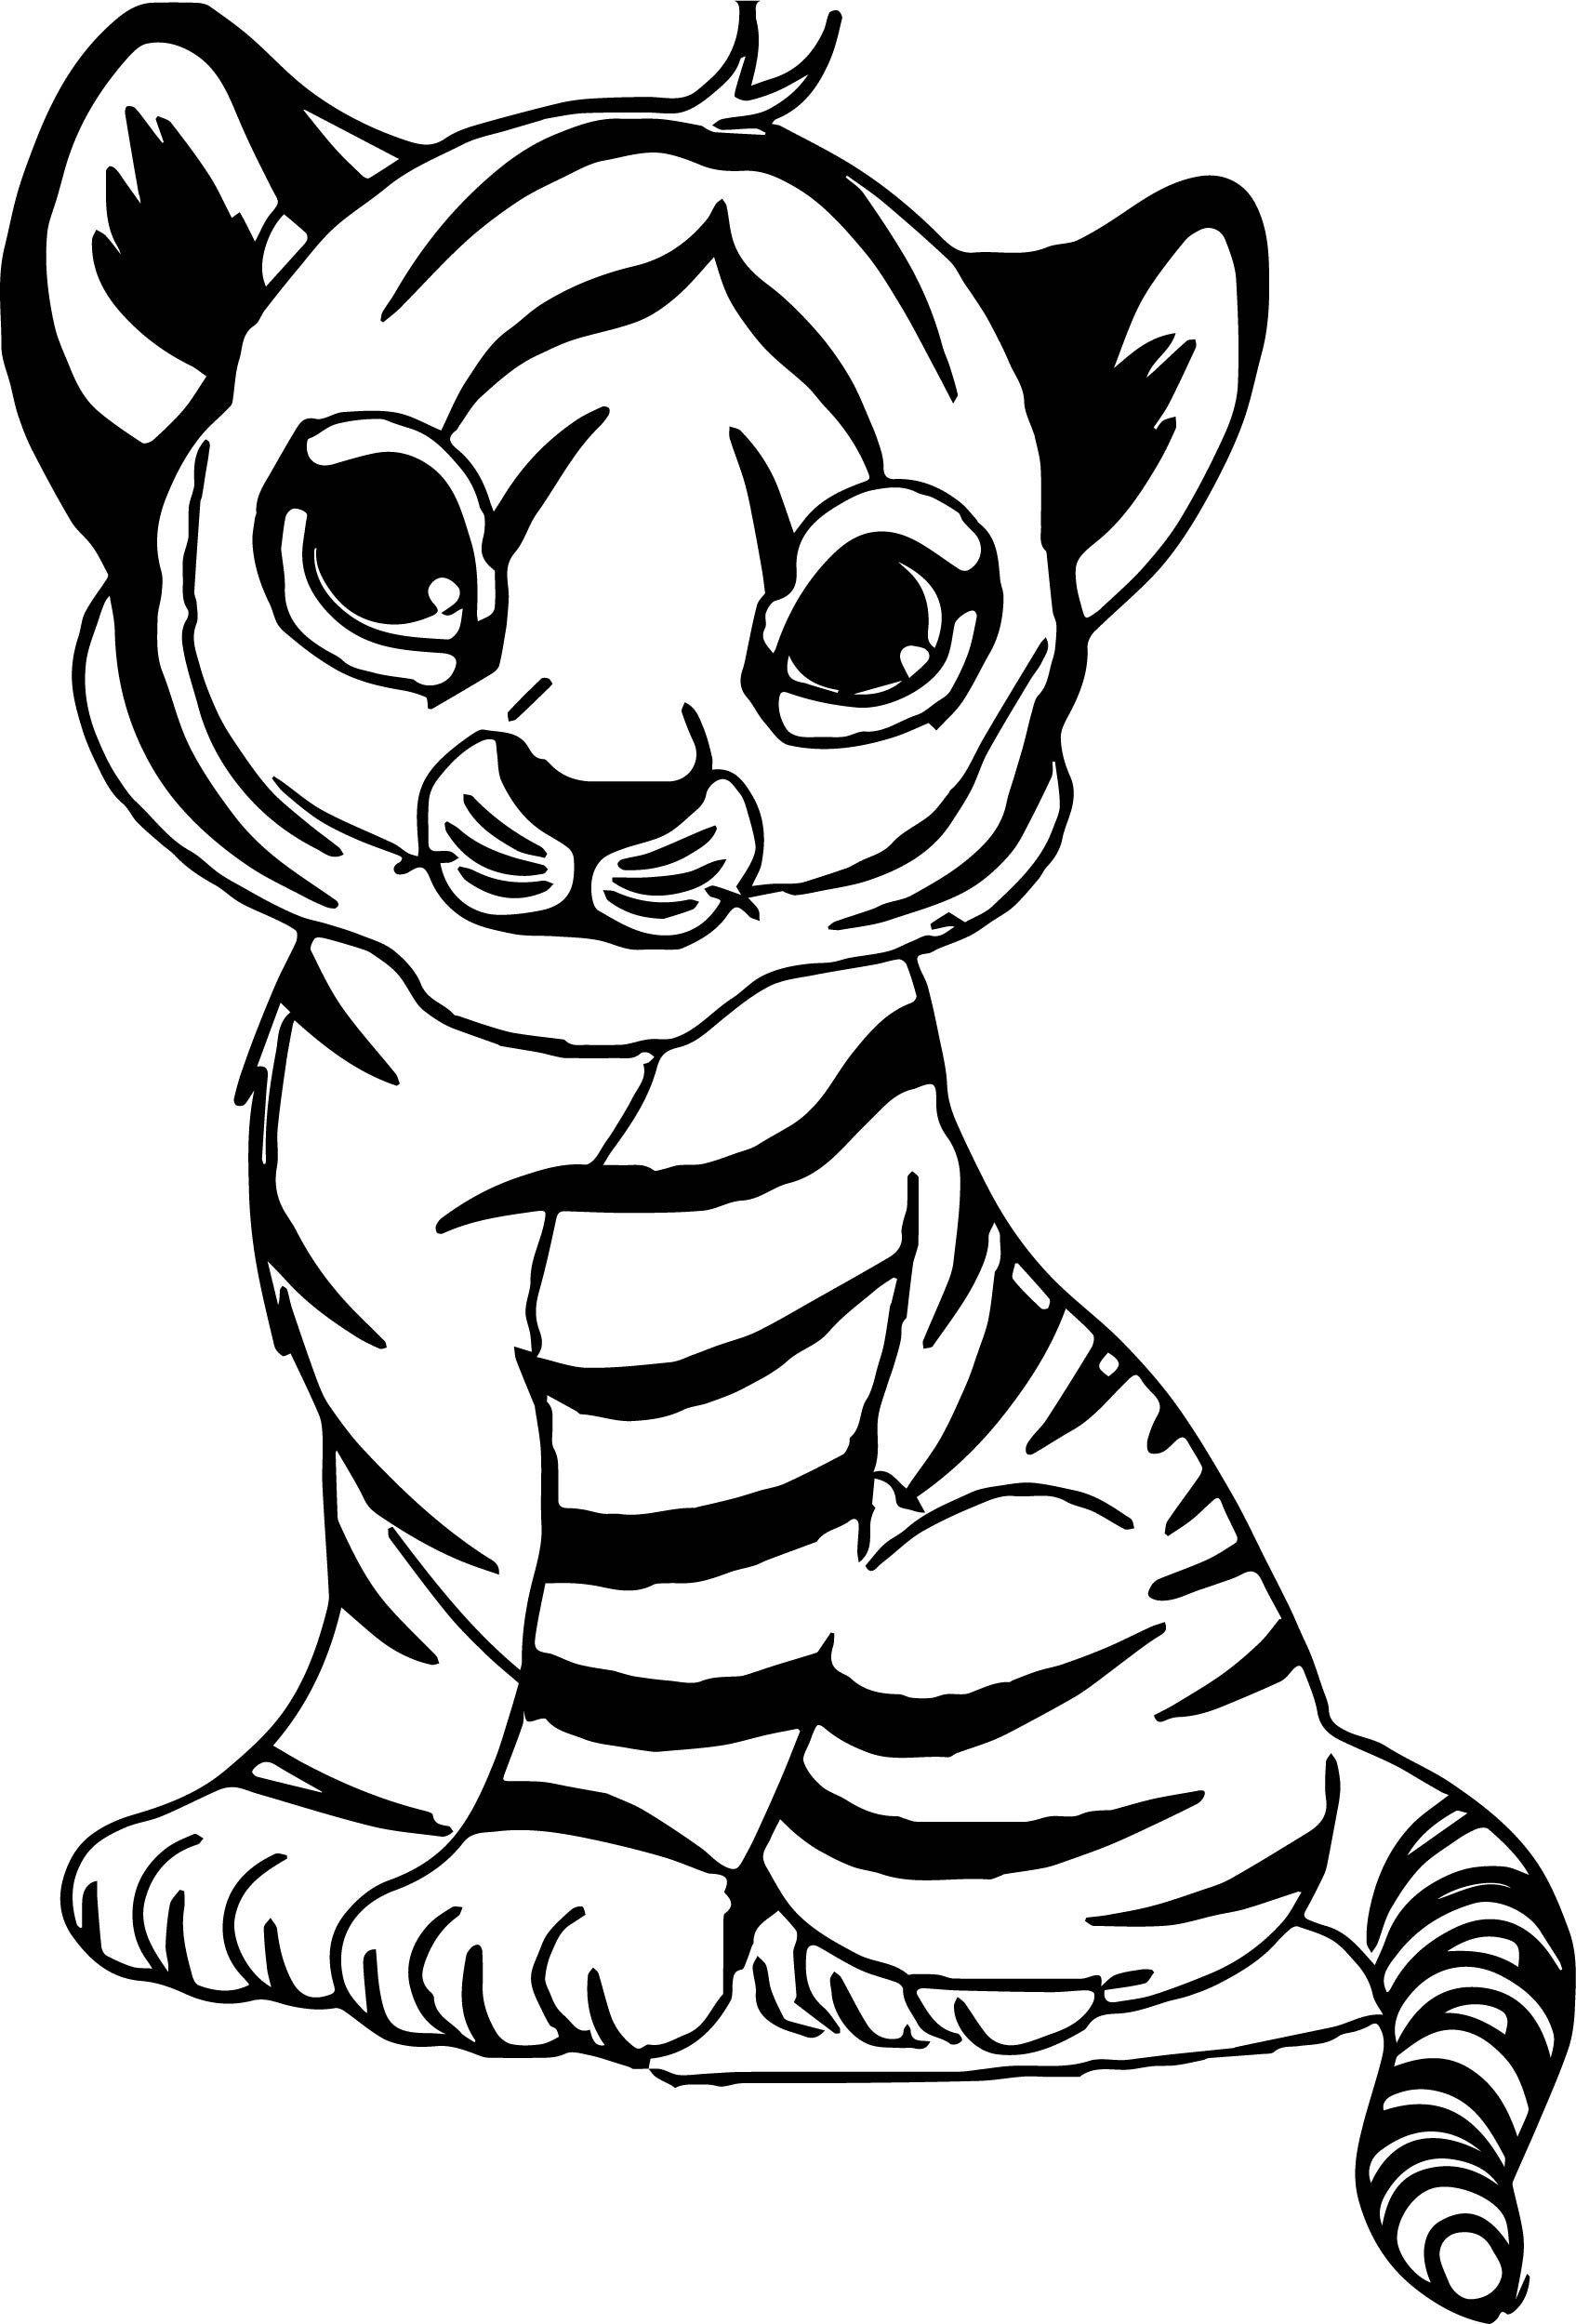 Animal Coloring Pages Cute Printable Cute Baby Tiger Coloring Pages Zoo Animal Coloring Pages Animal Coloring Pages Cartoon Coloring Pages